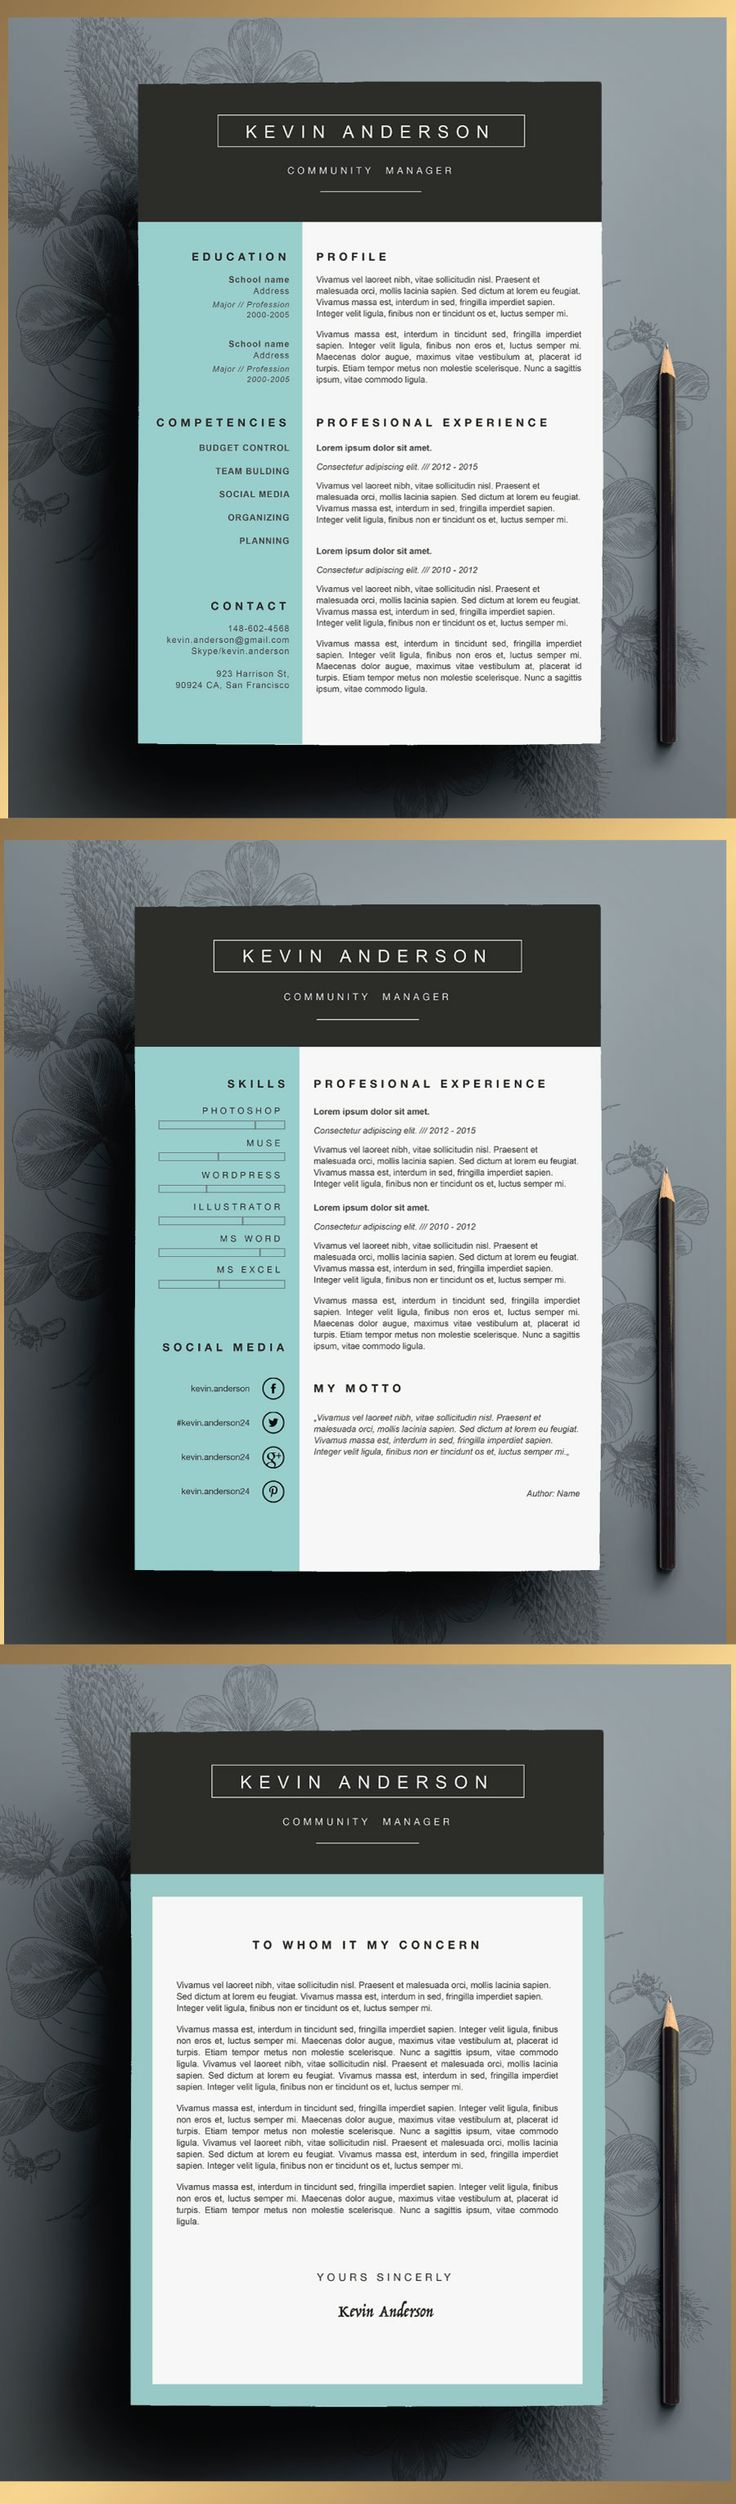 Stylish Resume Template editable in Ms Word